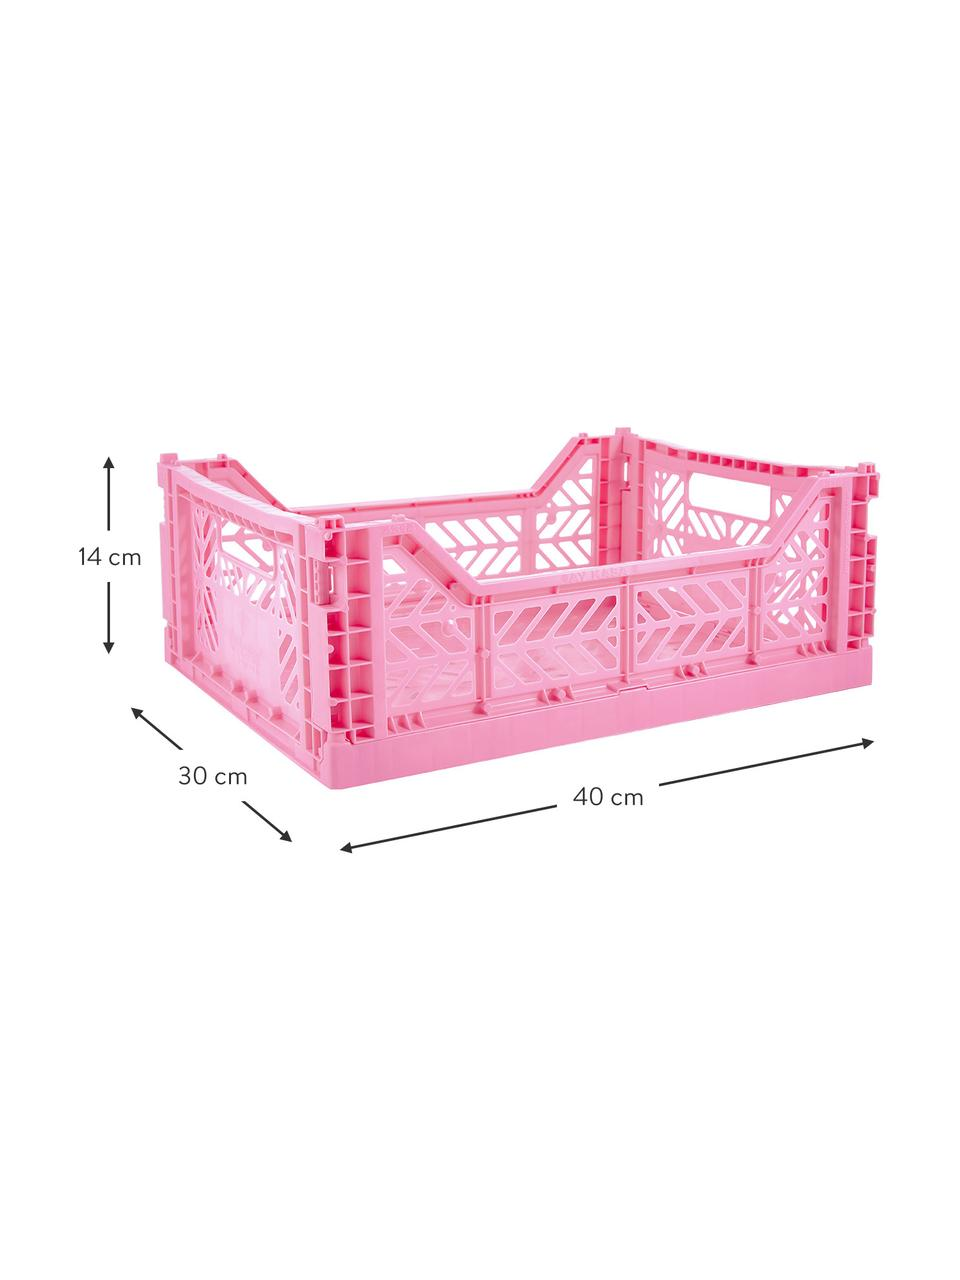 Caisse pliable de taille moyenne Baby Pink, empilable, Rose vif